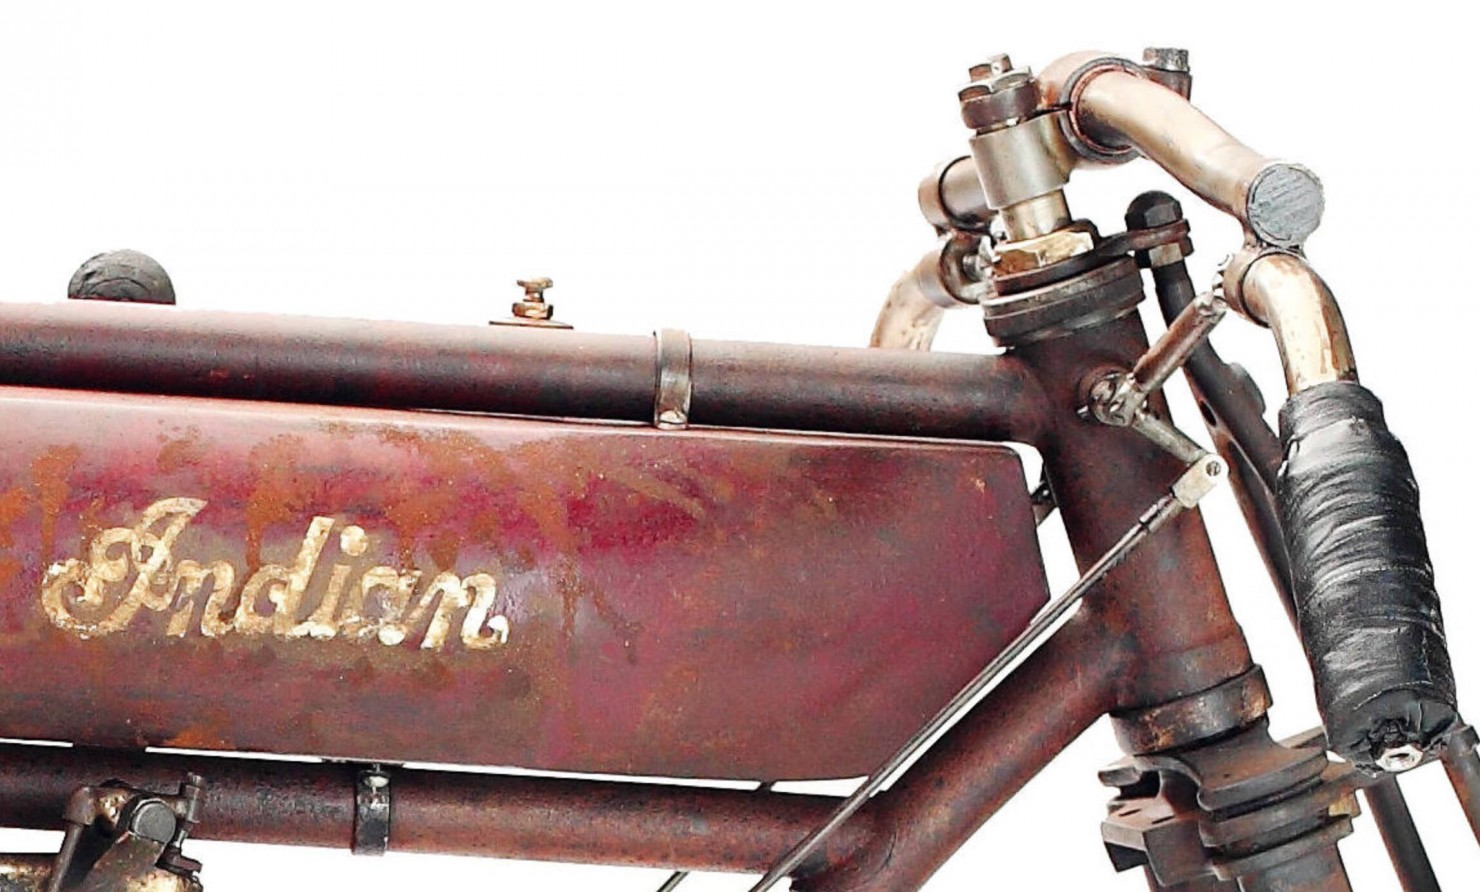 Indian Board Track Racer 1